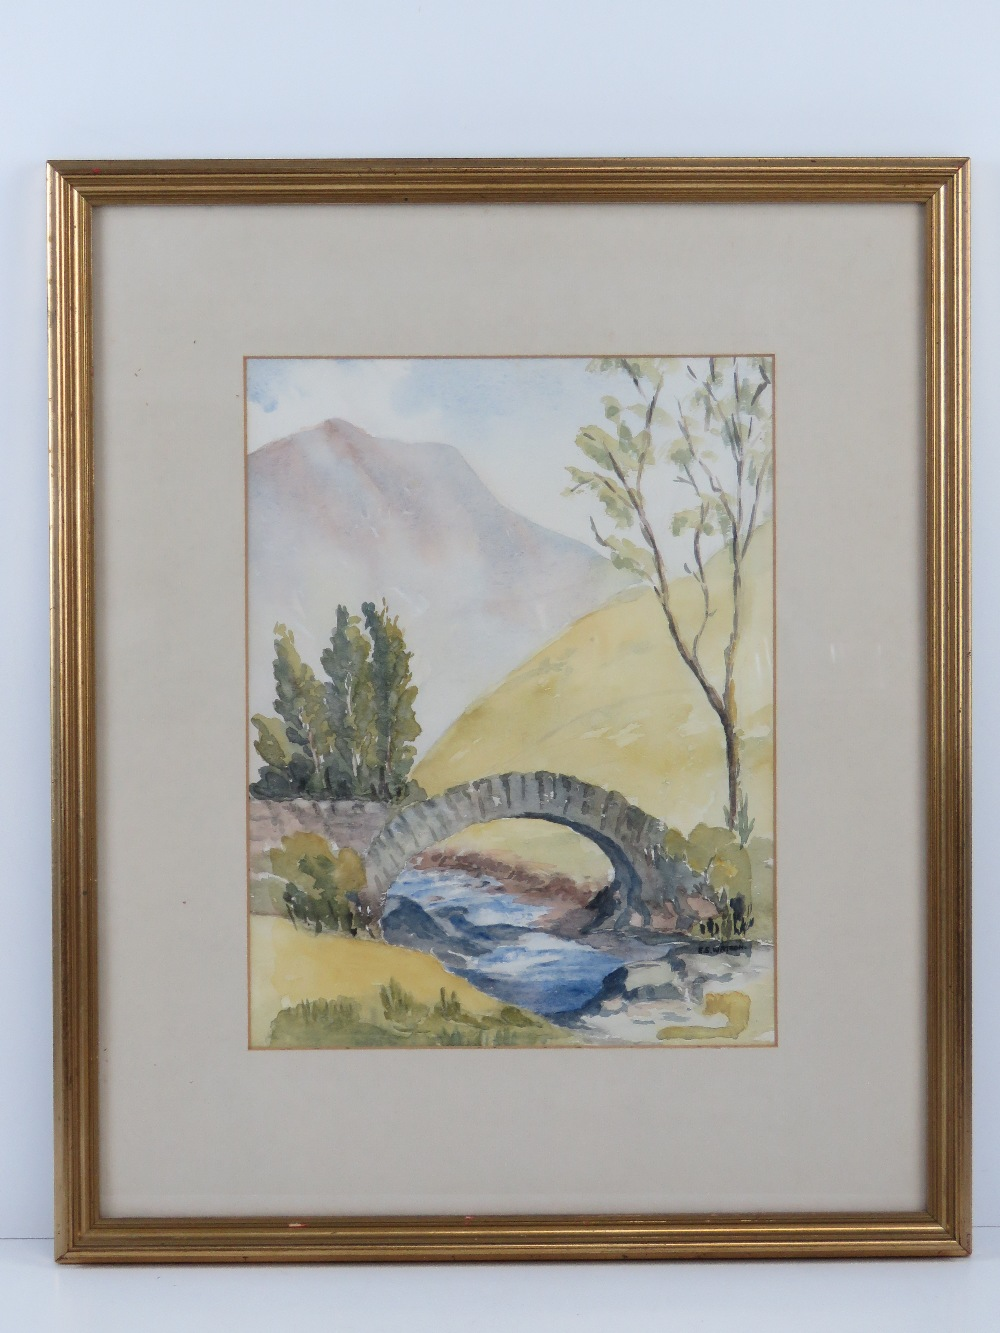 Watercolour by Eve Watson 'Pack horse br